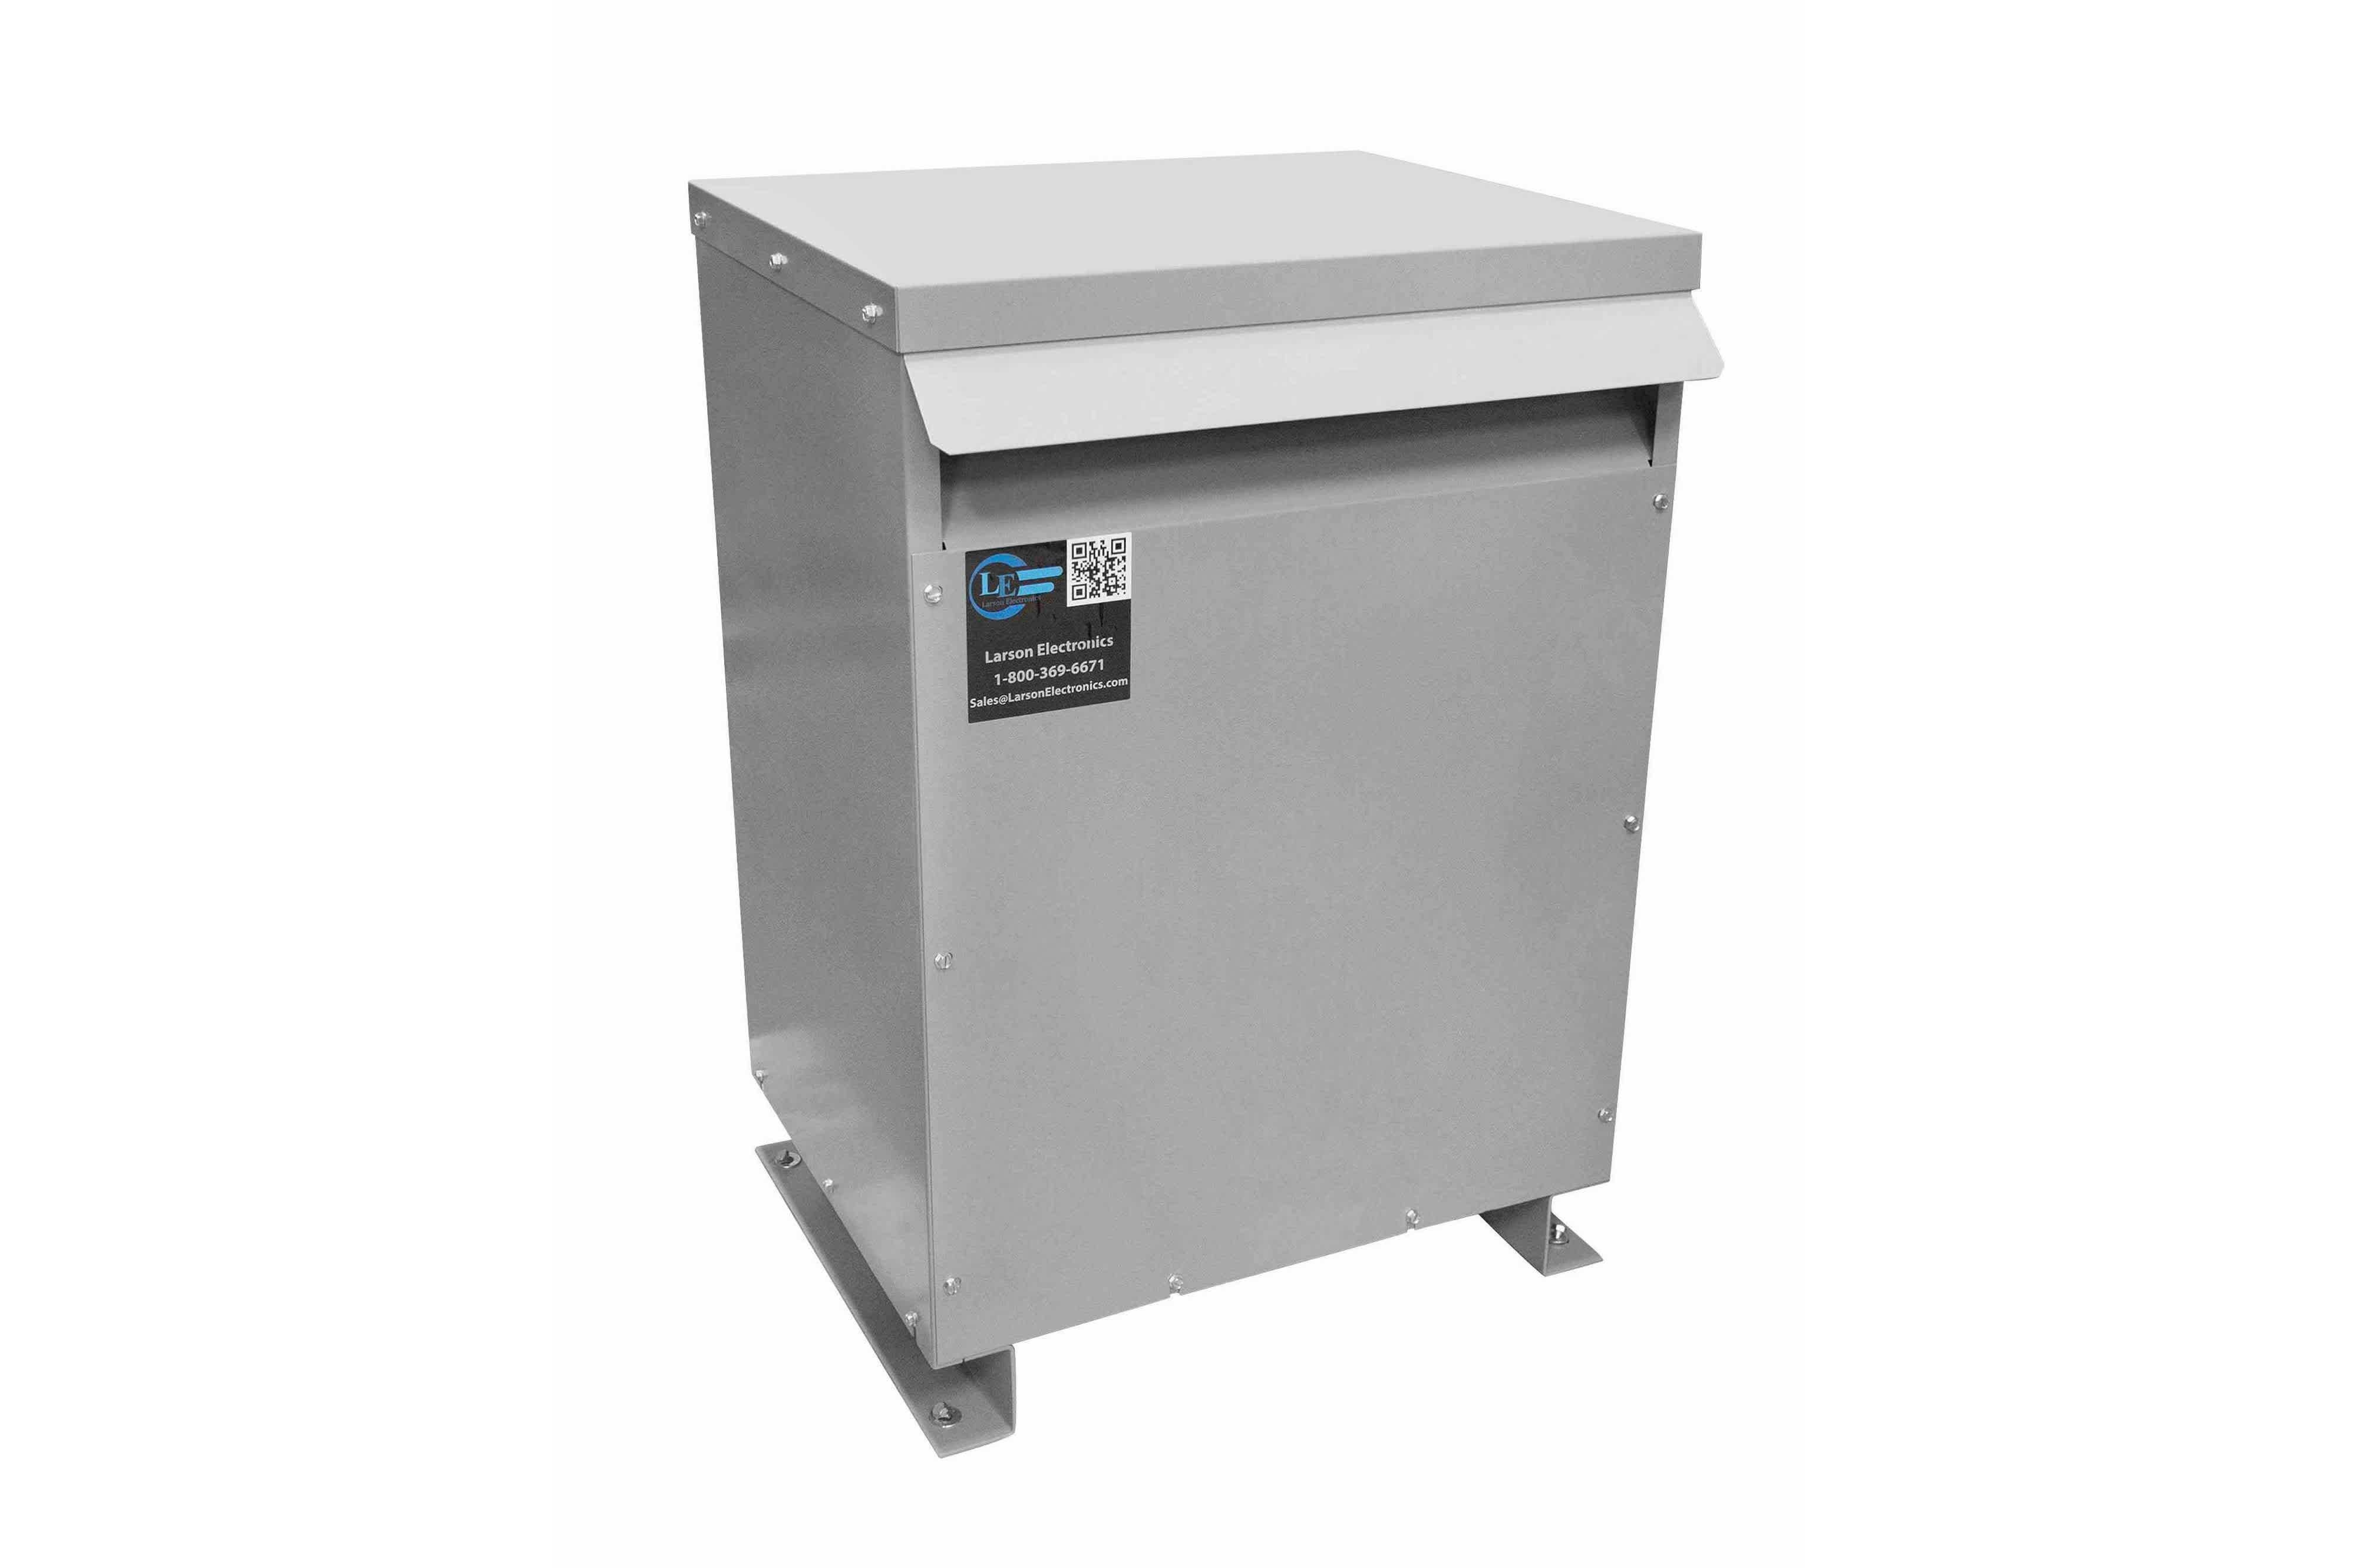 13 kVA 3PH Isolation Transformer, 400V Delta Primary, 208V Delta Secondary, N3R, Ventilated, 60 Hz